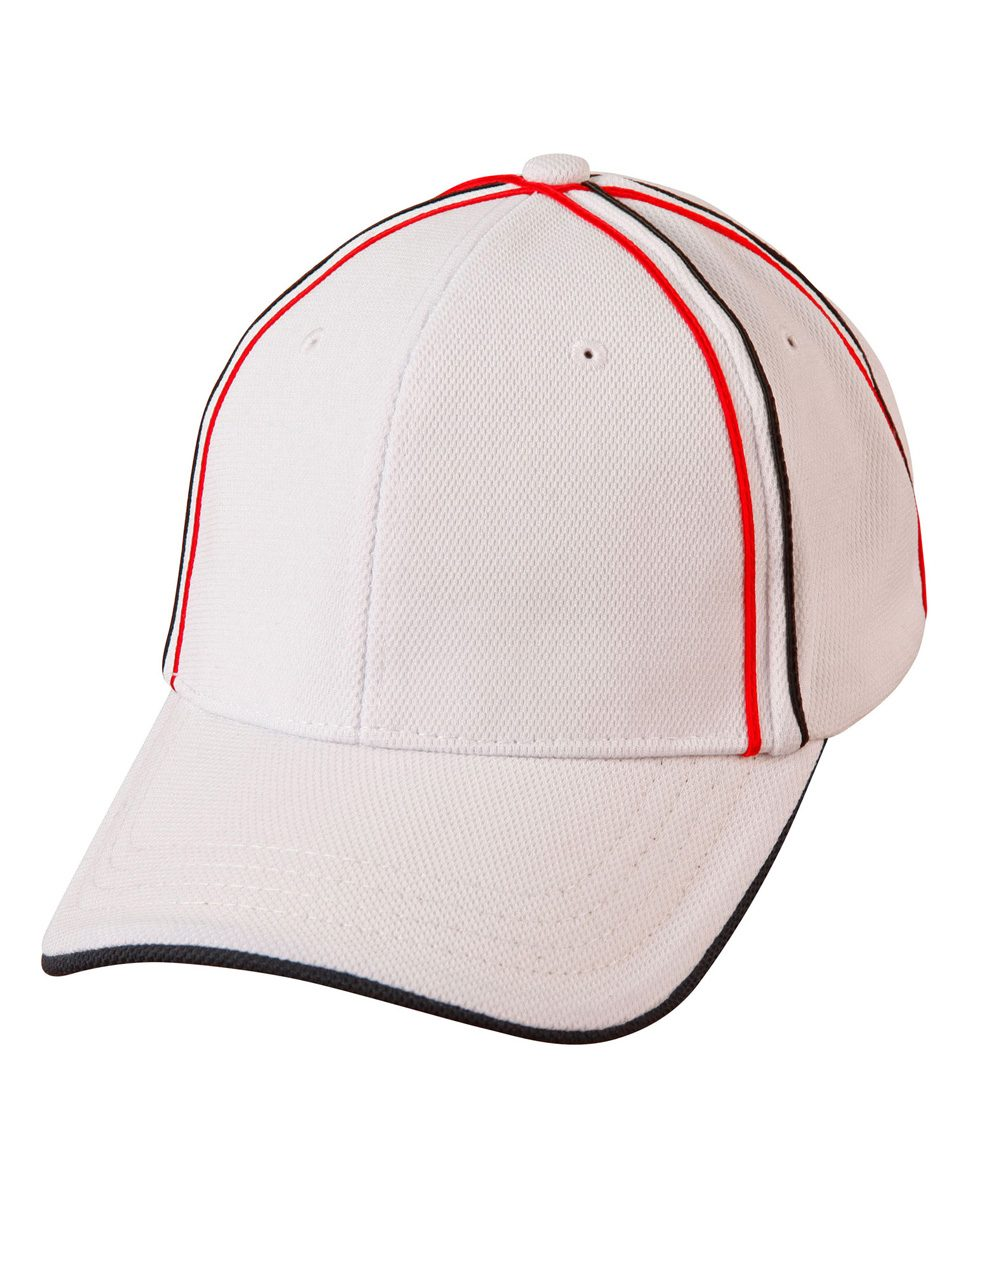 CH76 - White/Navy/Red